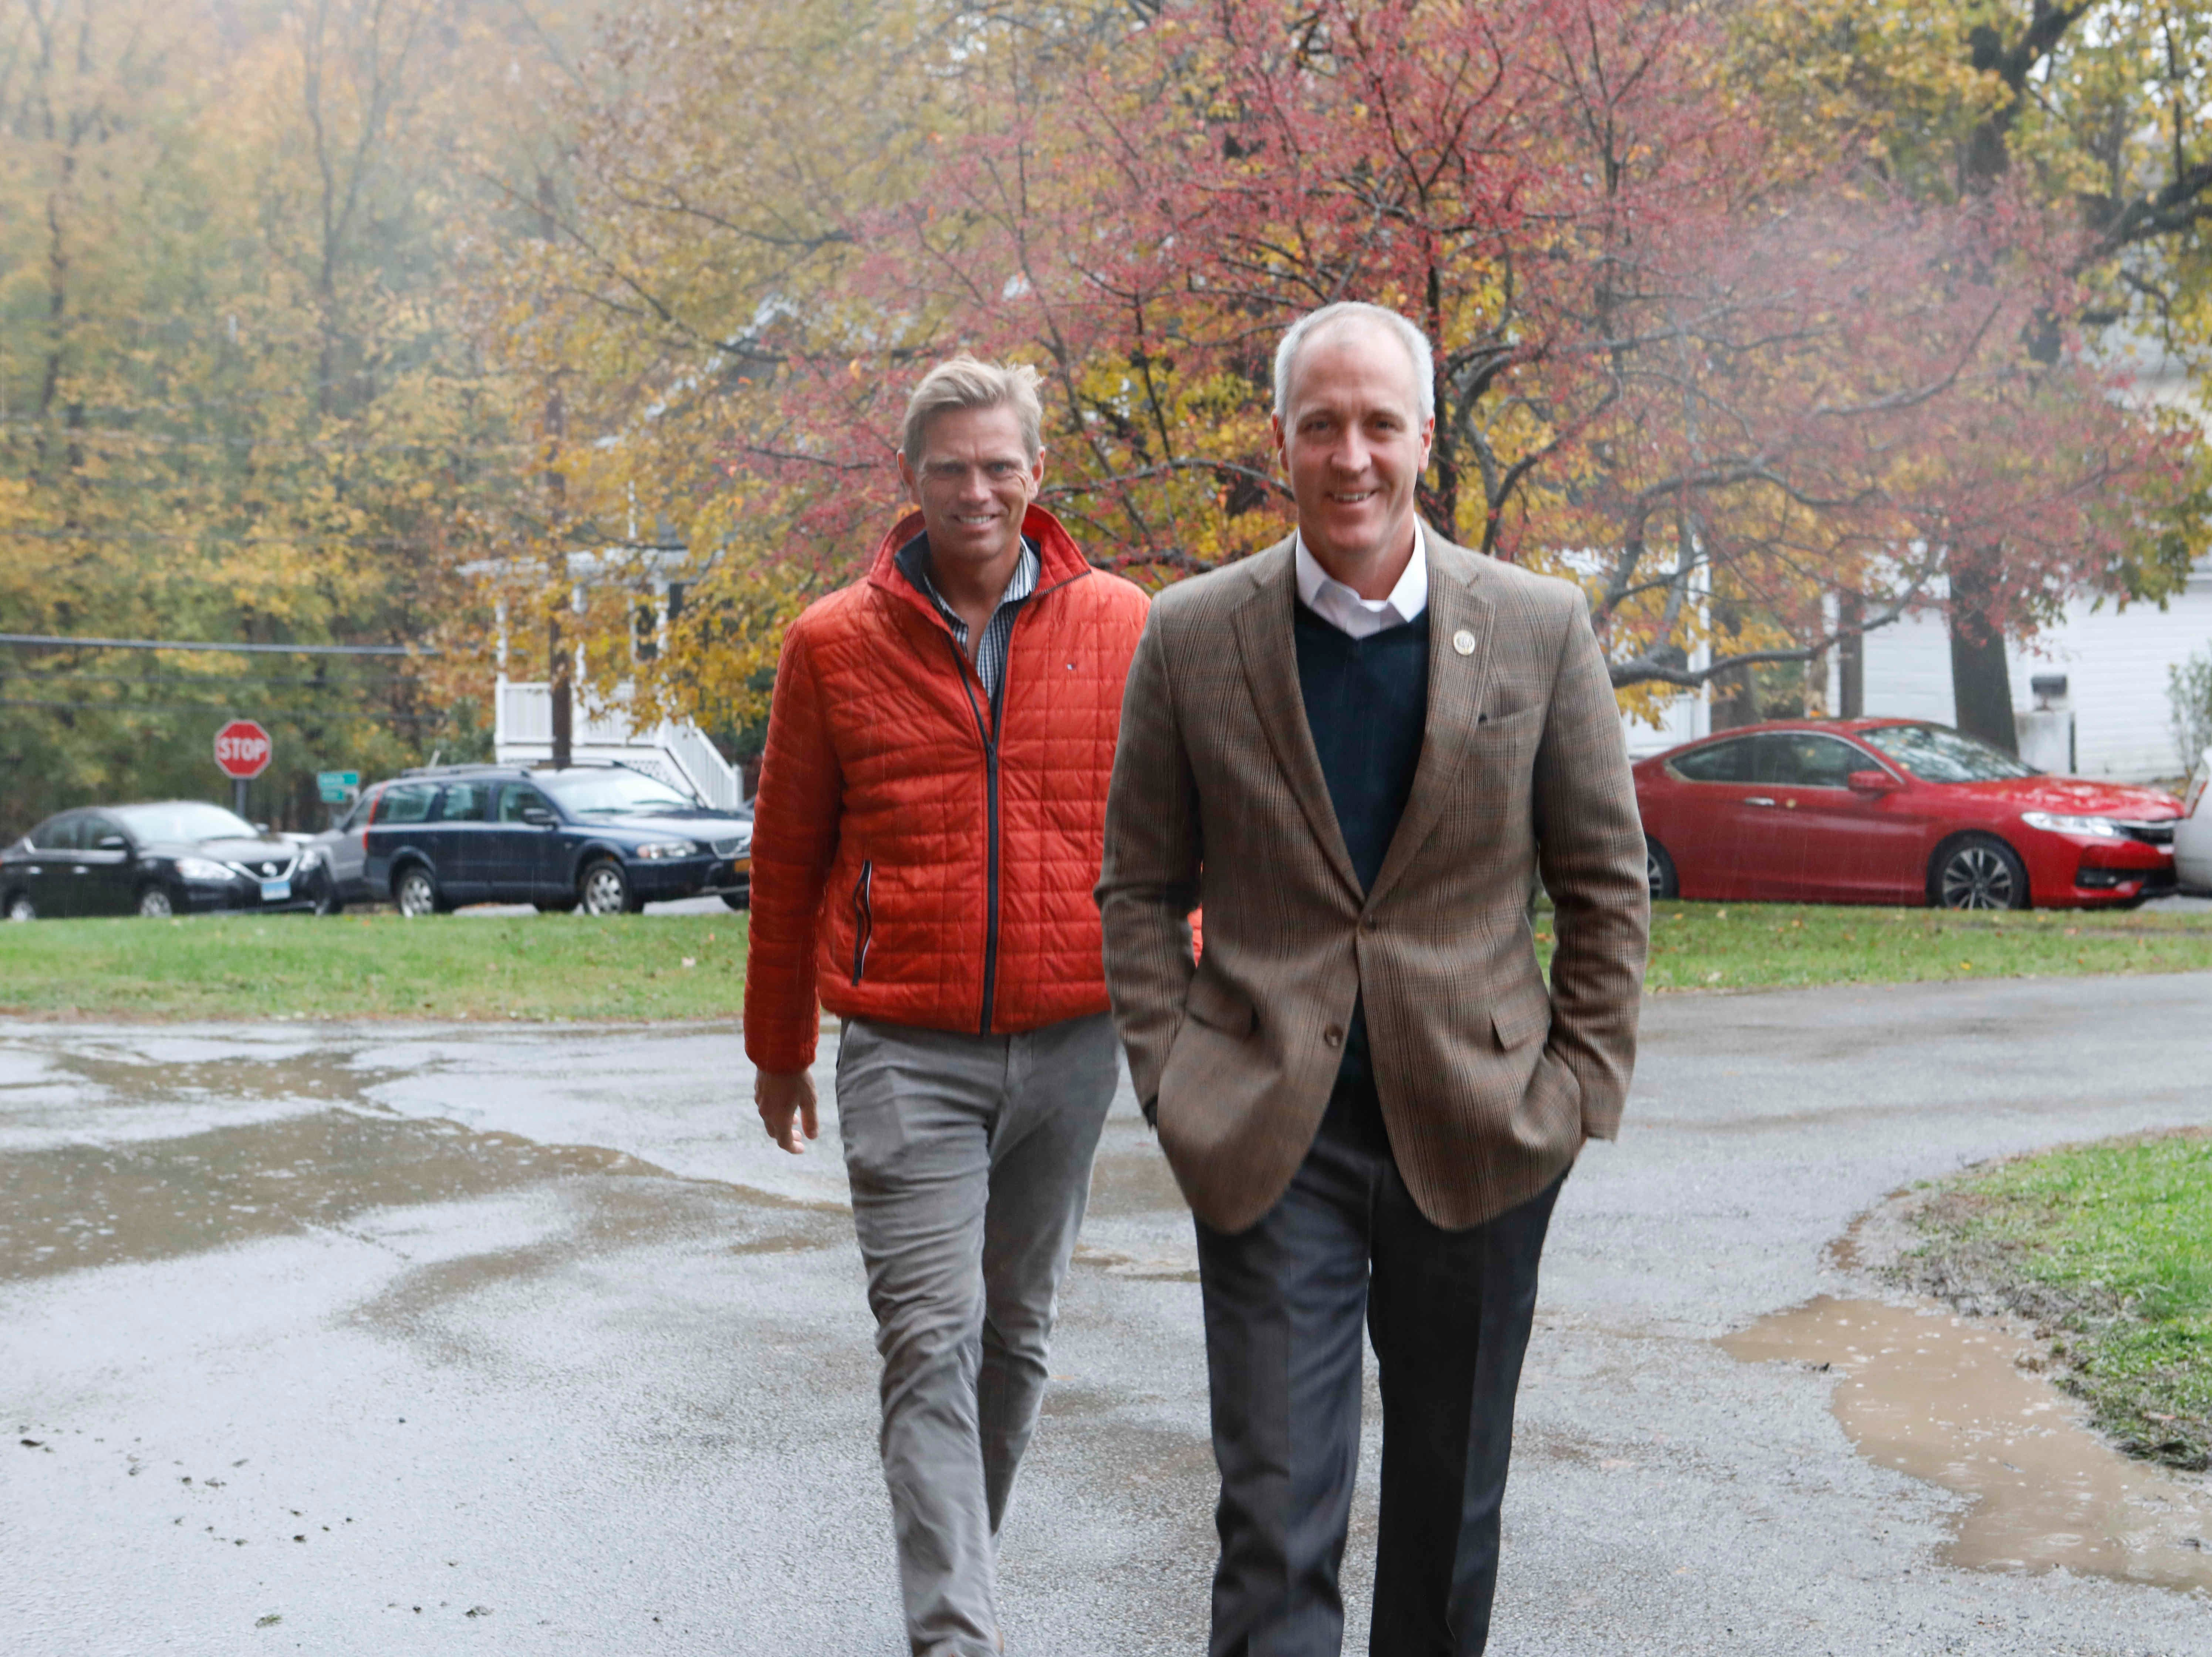 Congressman Sean Patrick Maloney arrives at the United Methodist Church polling center in Cold Spring on Nov. 6, 2018.